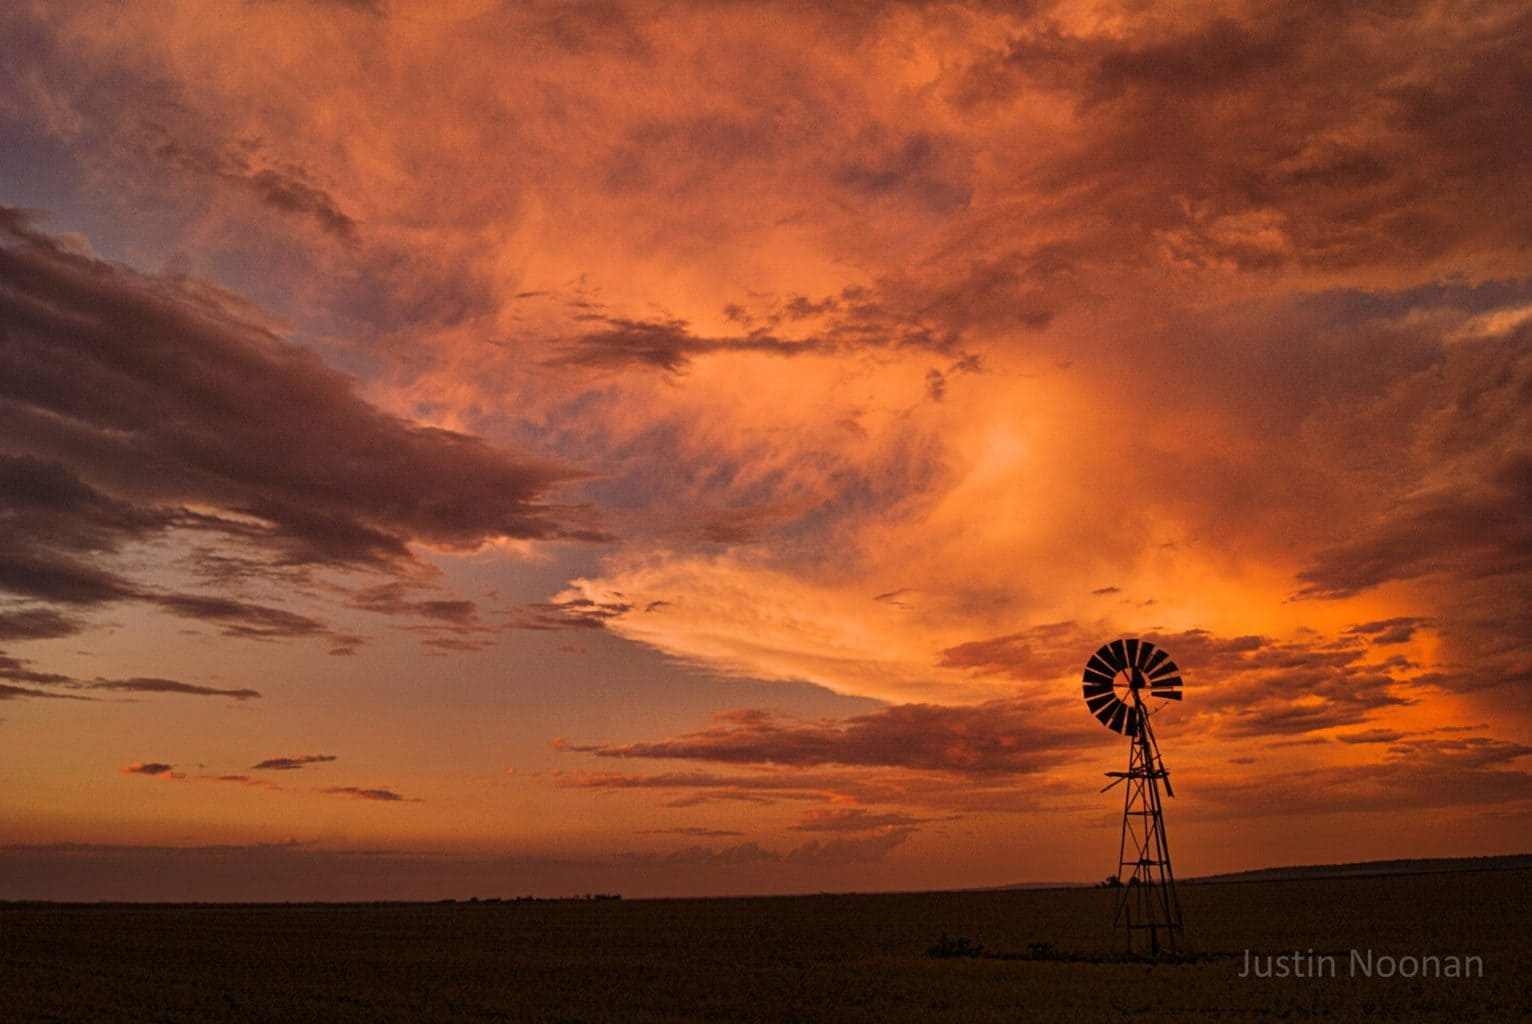 At the end of a bust chase the least mother nature could do was to put on a spectacular sunset! And it did. It sure was the perfect surroundings to watch it unfold too. Taken out on the Darling Downs, QLD, Australia November 29th 2012